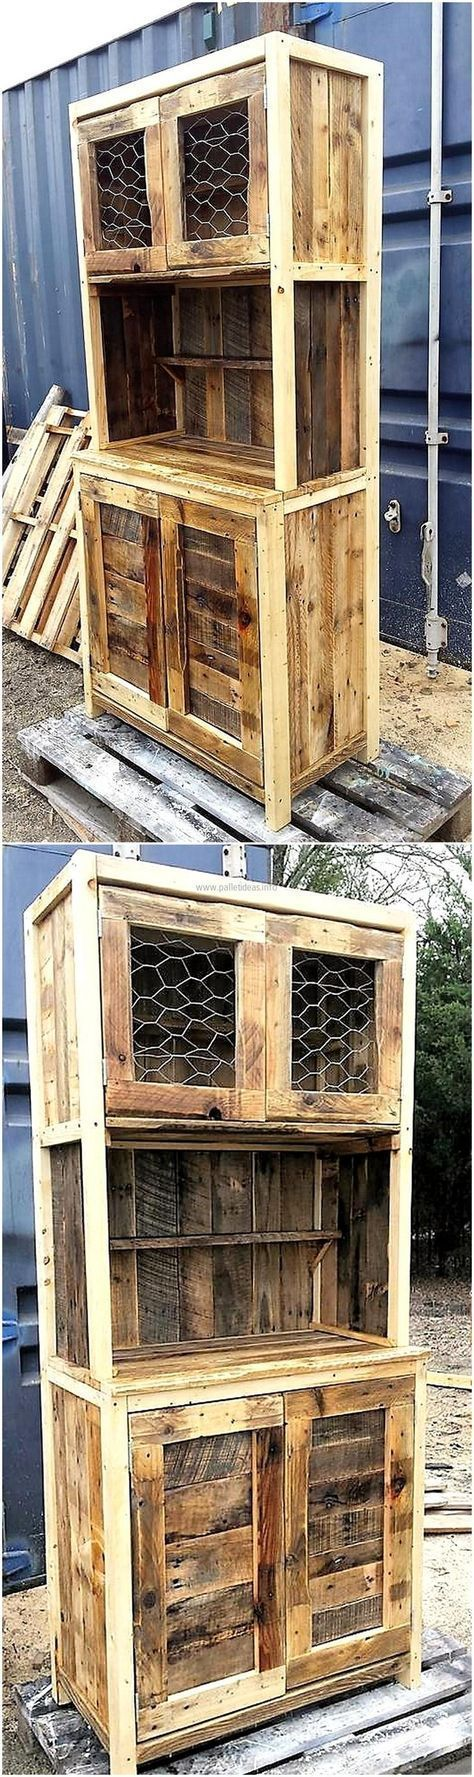 Pallet Rustic Storage Cabinet Refurbishedfurniture Rustic Storage Cabinets Wood Pallet Projects Pallet Designs